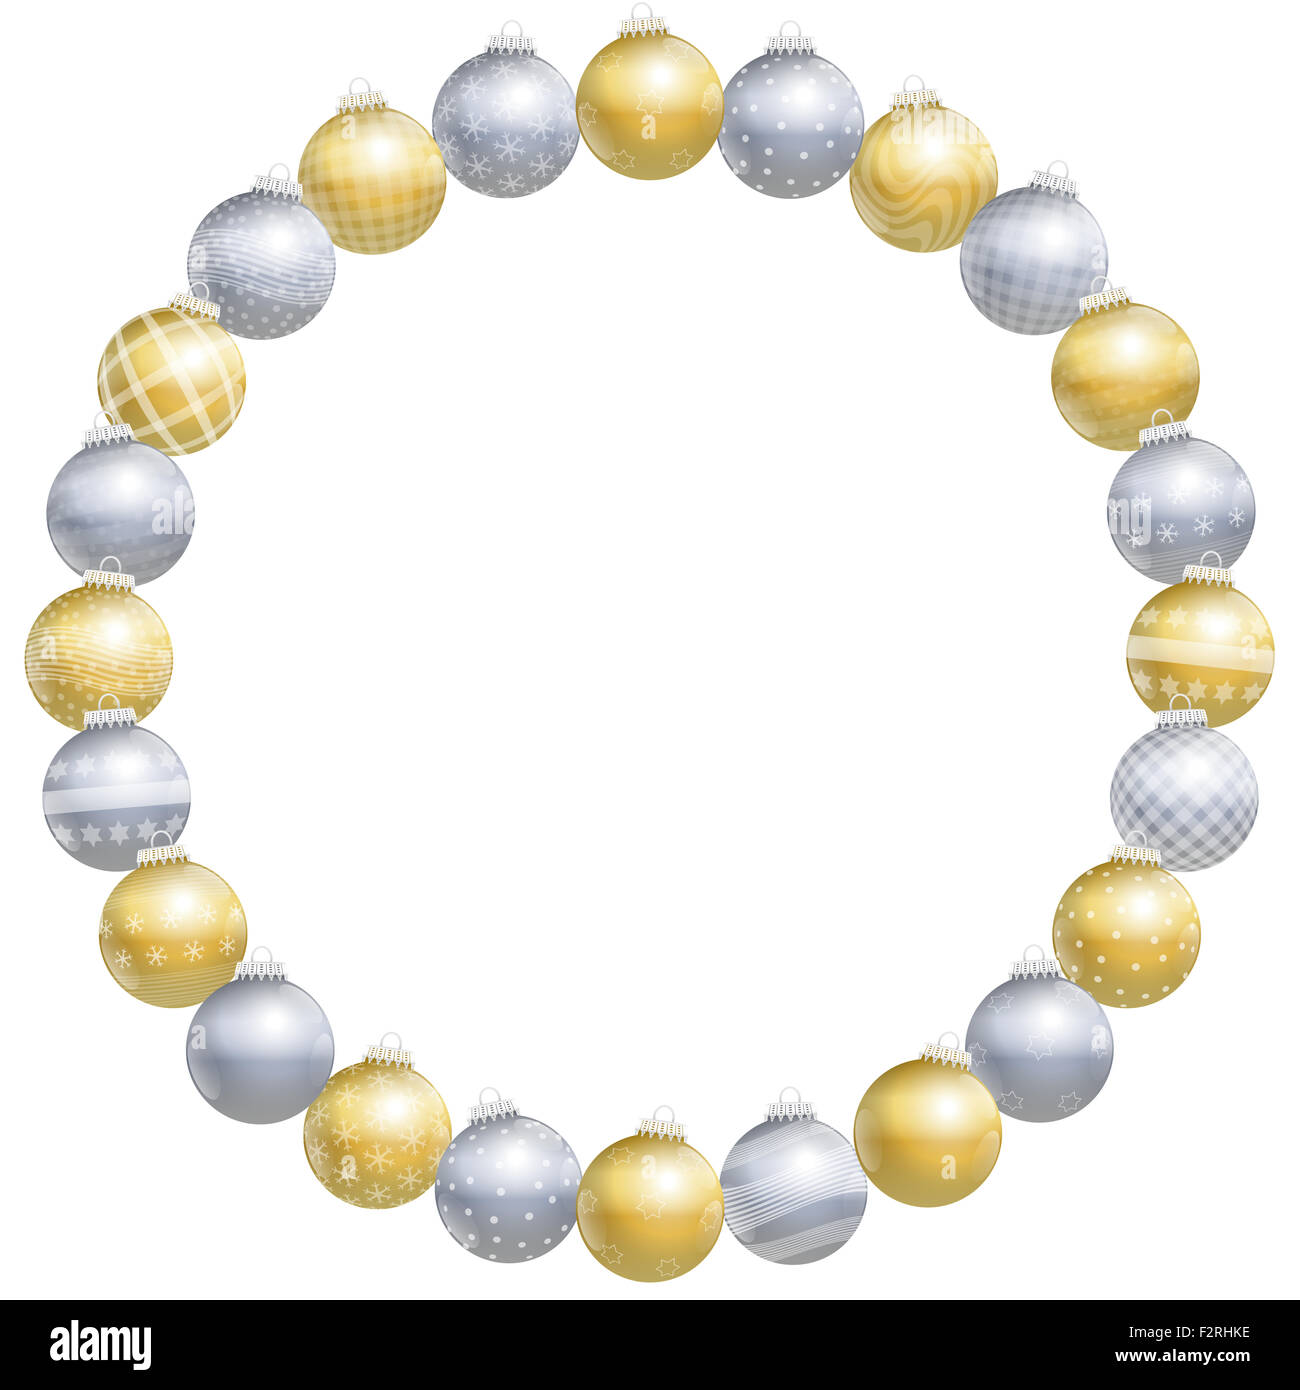 Christmas balls, round frame, gold, silver, different ornaments and patterns, twenty-four items. - Stock Image